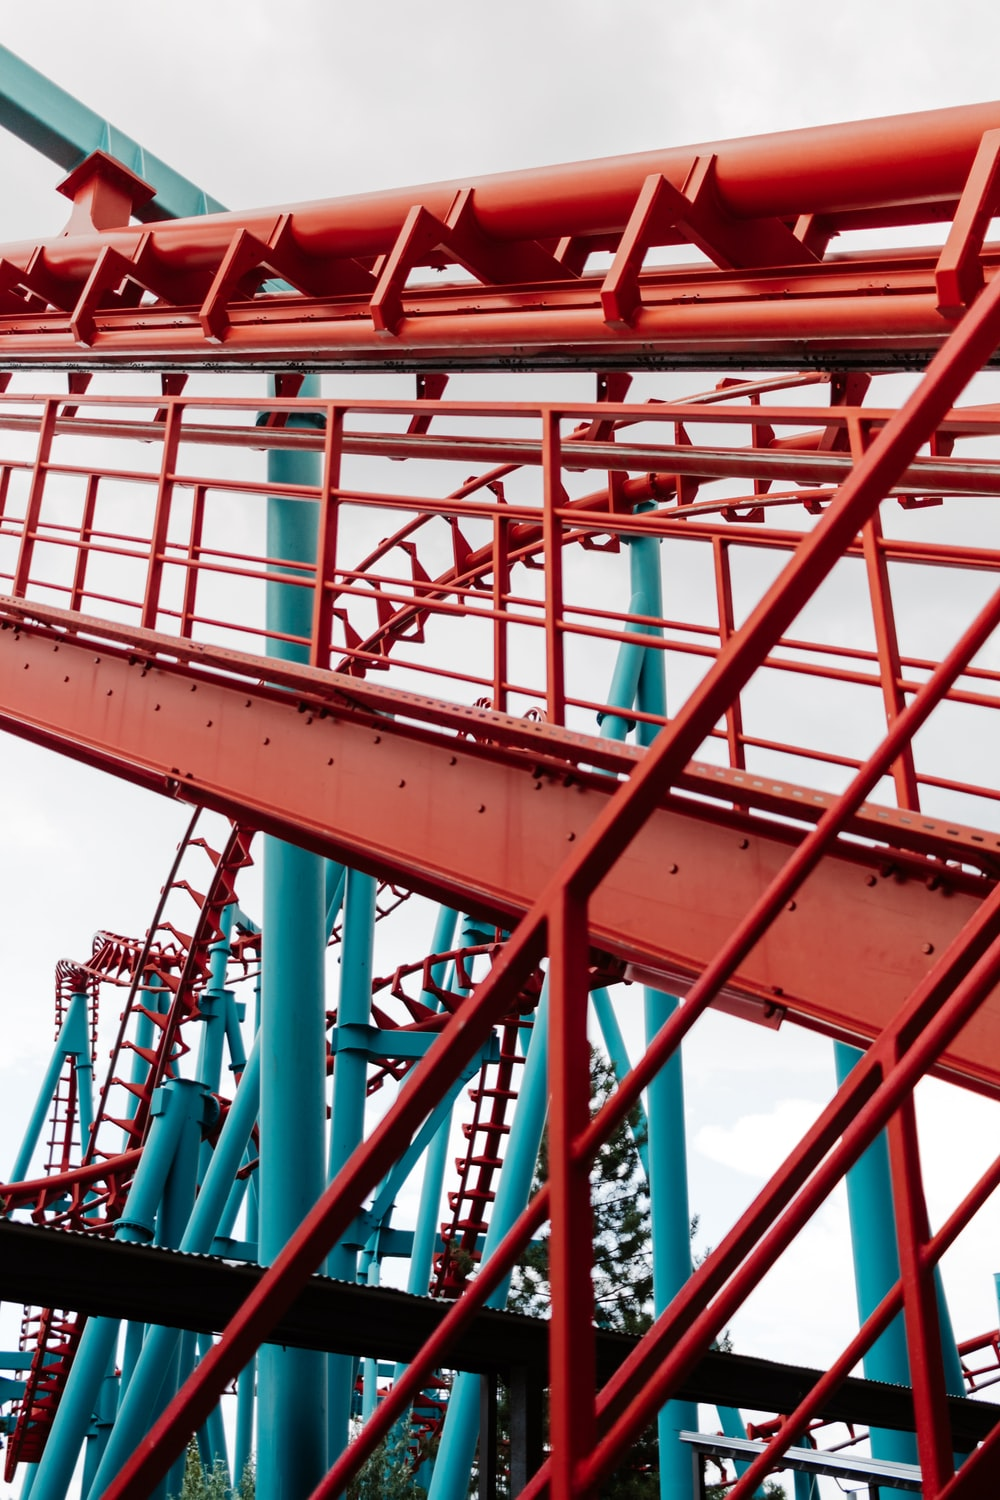 green and red metal roller coaster rails